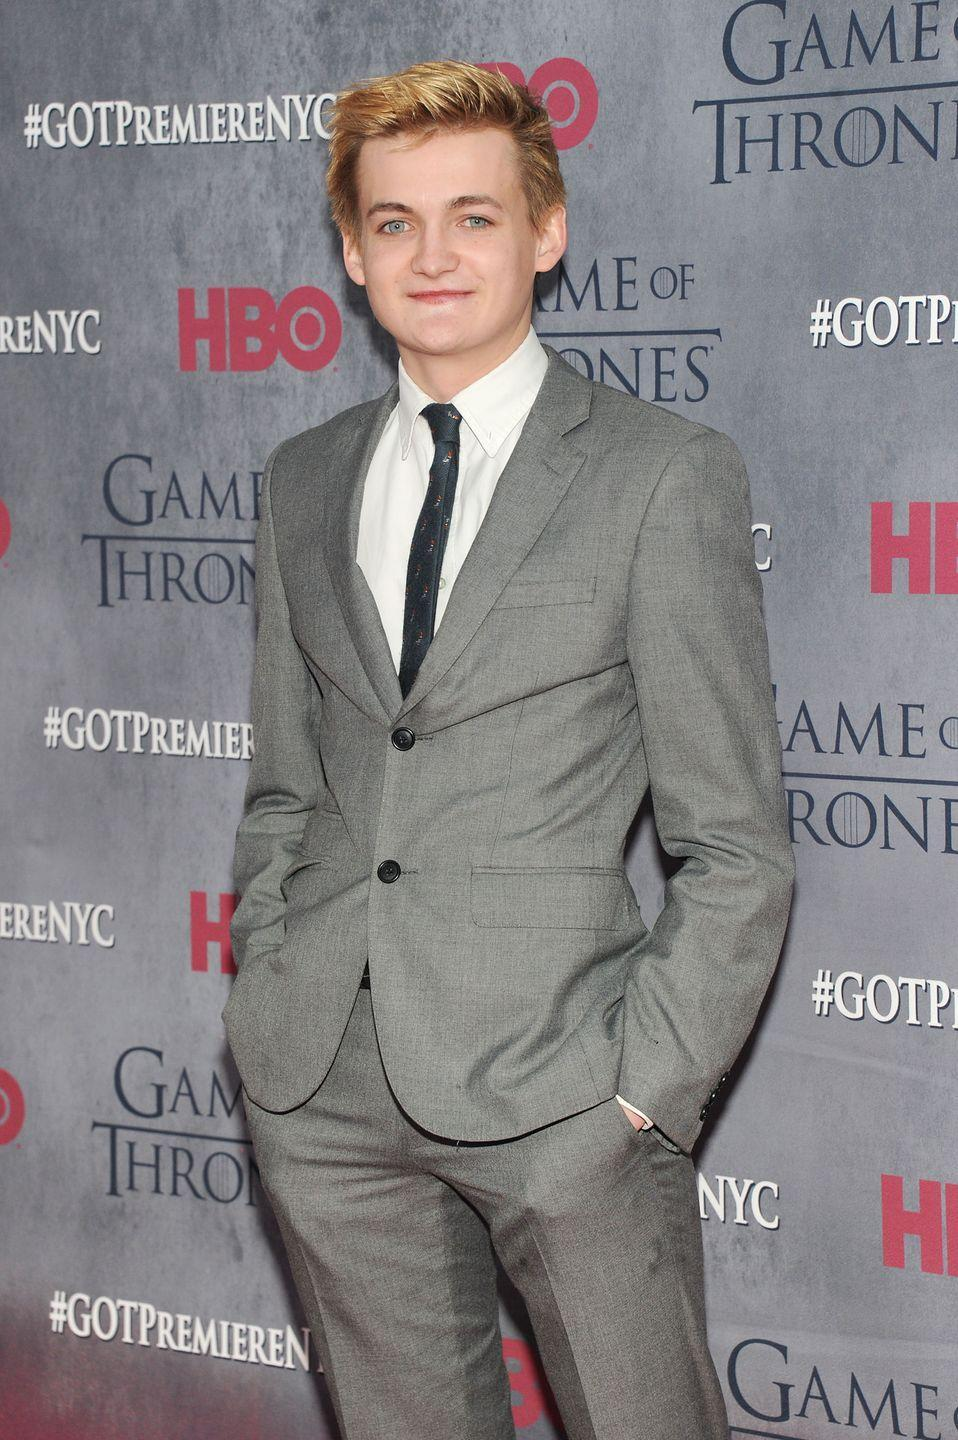 "<p>Didn't think the man portraying King Joffrey was born and raised in Westeros, did you? Lucky for Irish <em><a href=""https://www.menshealth.com/entertainment/a26754398/nikolaj-coster-waldau-game-of-thrones-interview/"" rel=""nofollow noopener"" target=""_blank"" data-ylk=""slk:Game of Thrones"" class=""link rapid-noclick-resp"">Game of Thrones</a></em> fans, the county of Cork is where the actor grew to love his chosen profession. </p>"